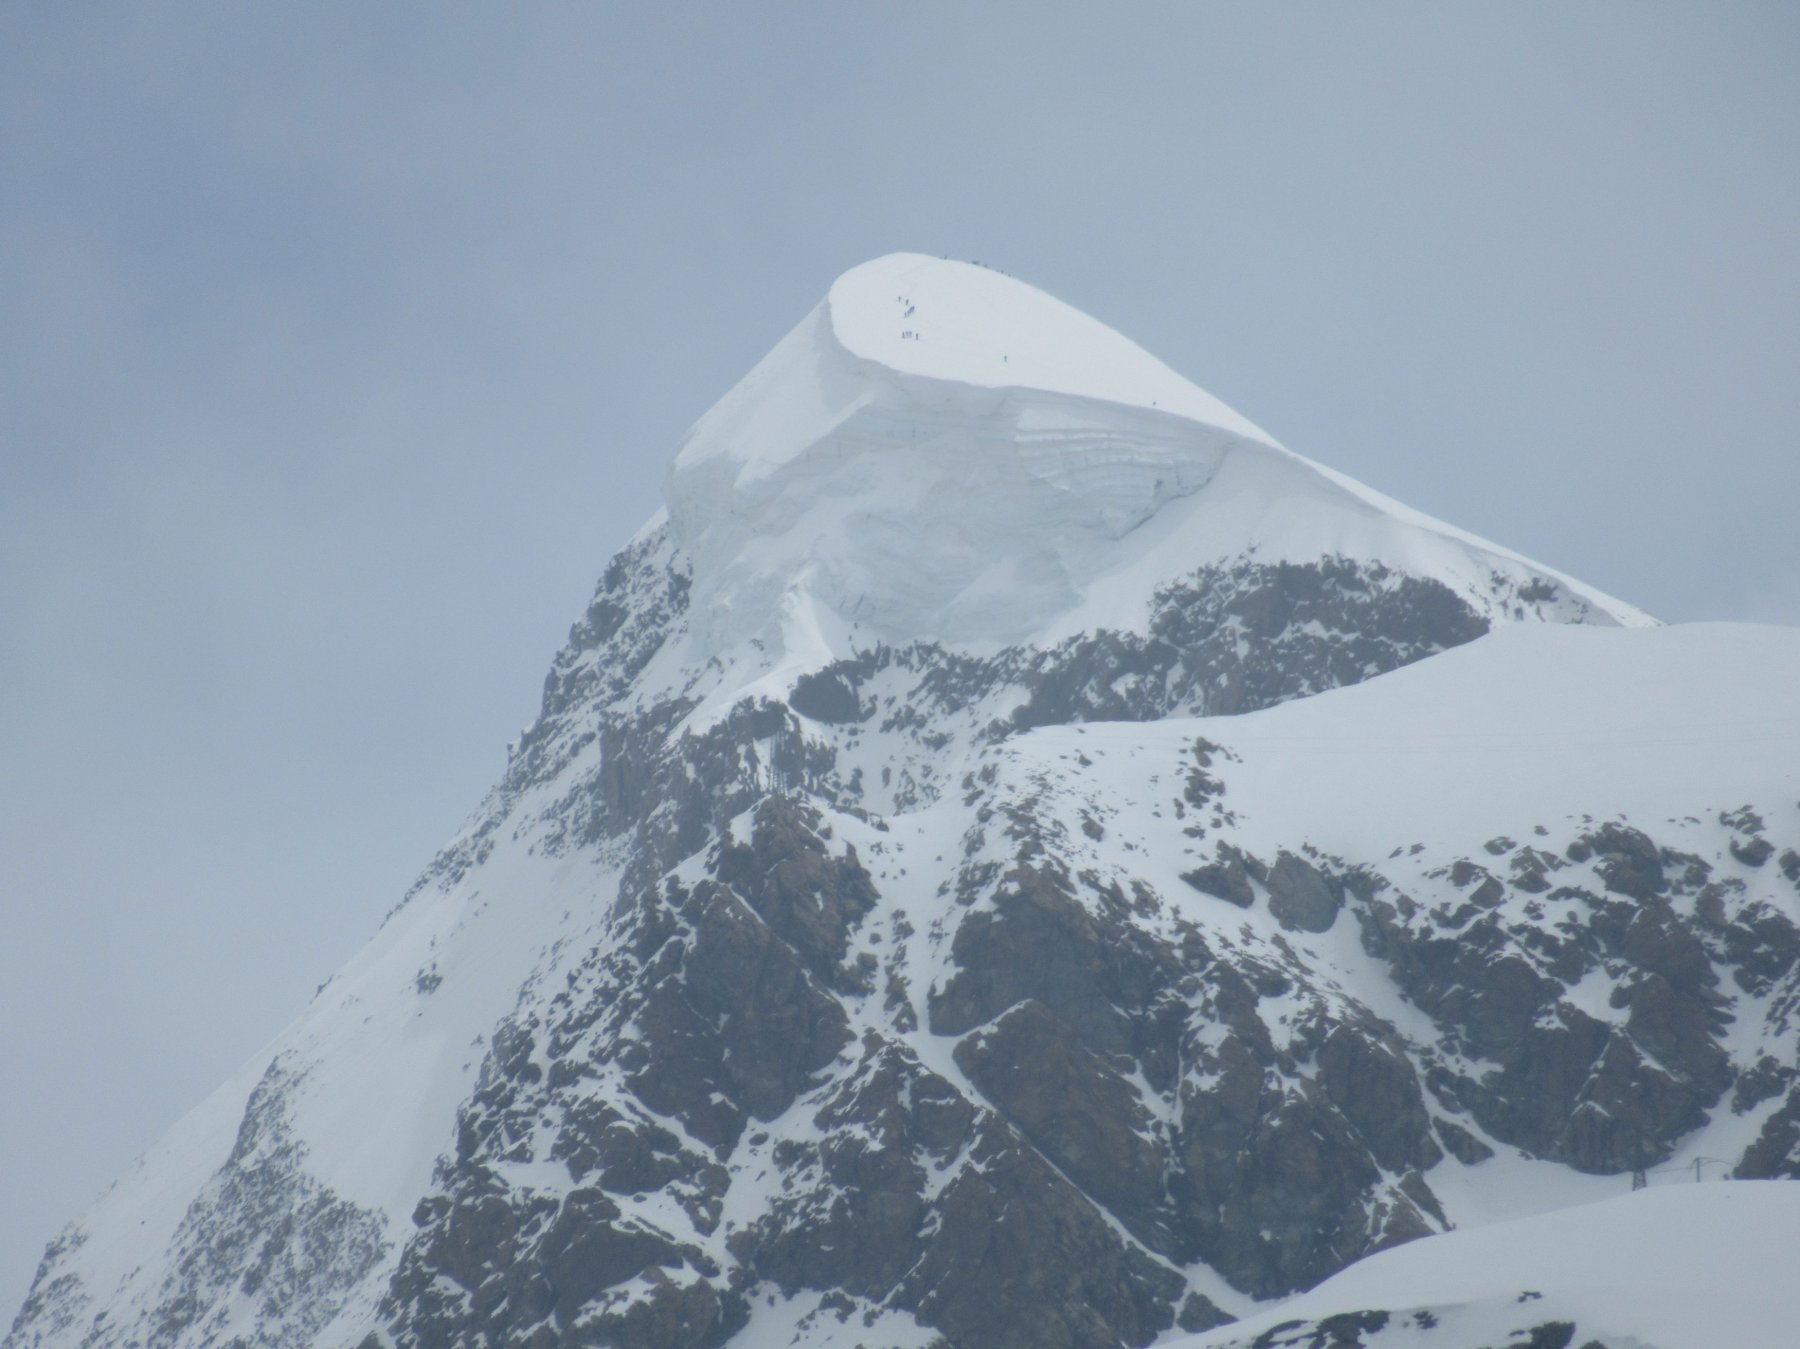 Ressa sul Breithorn Occidentale